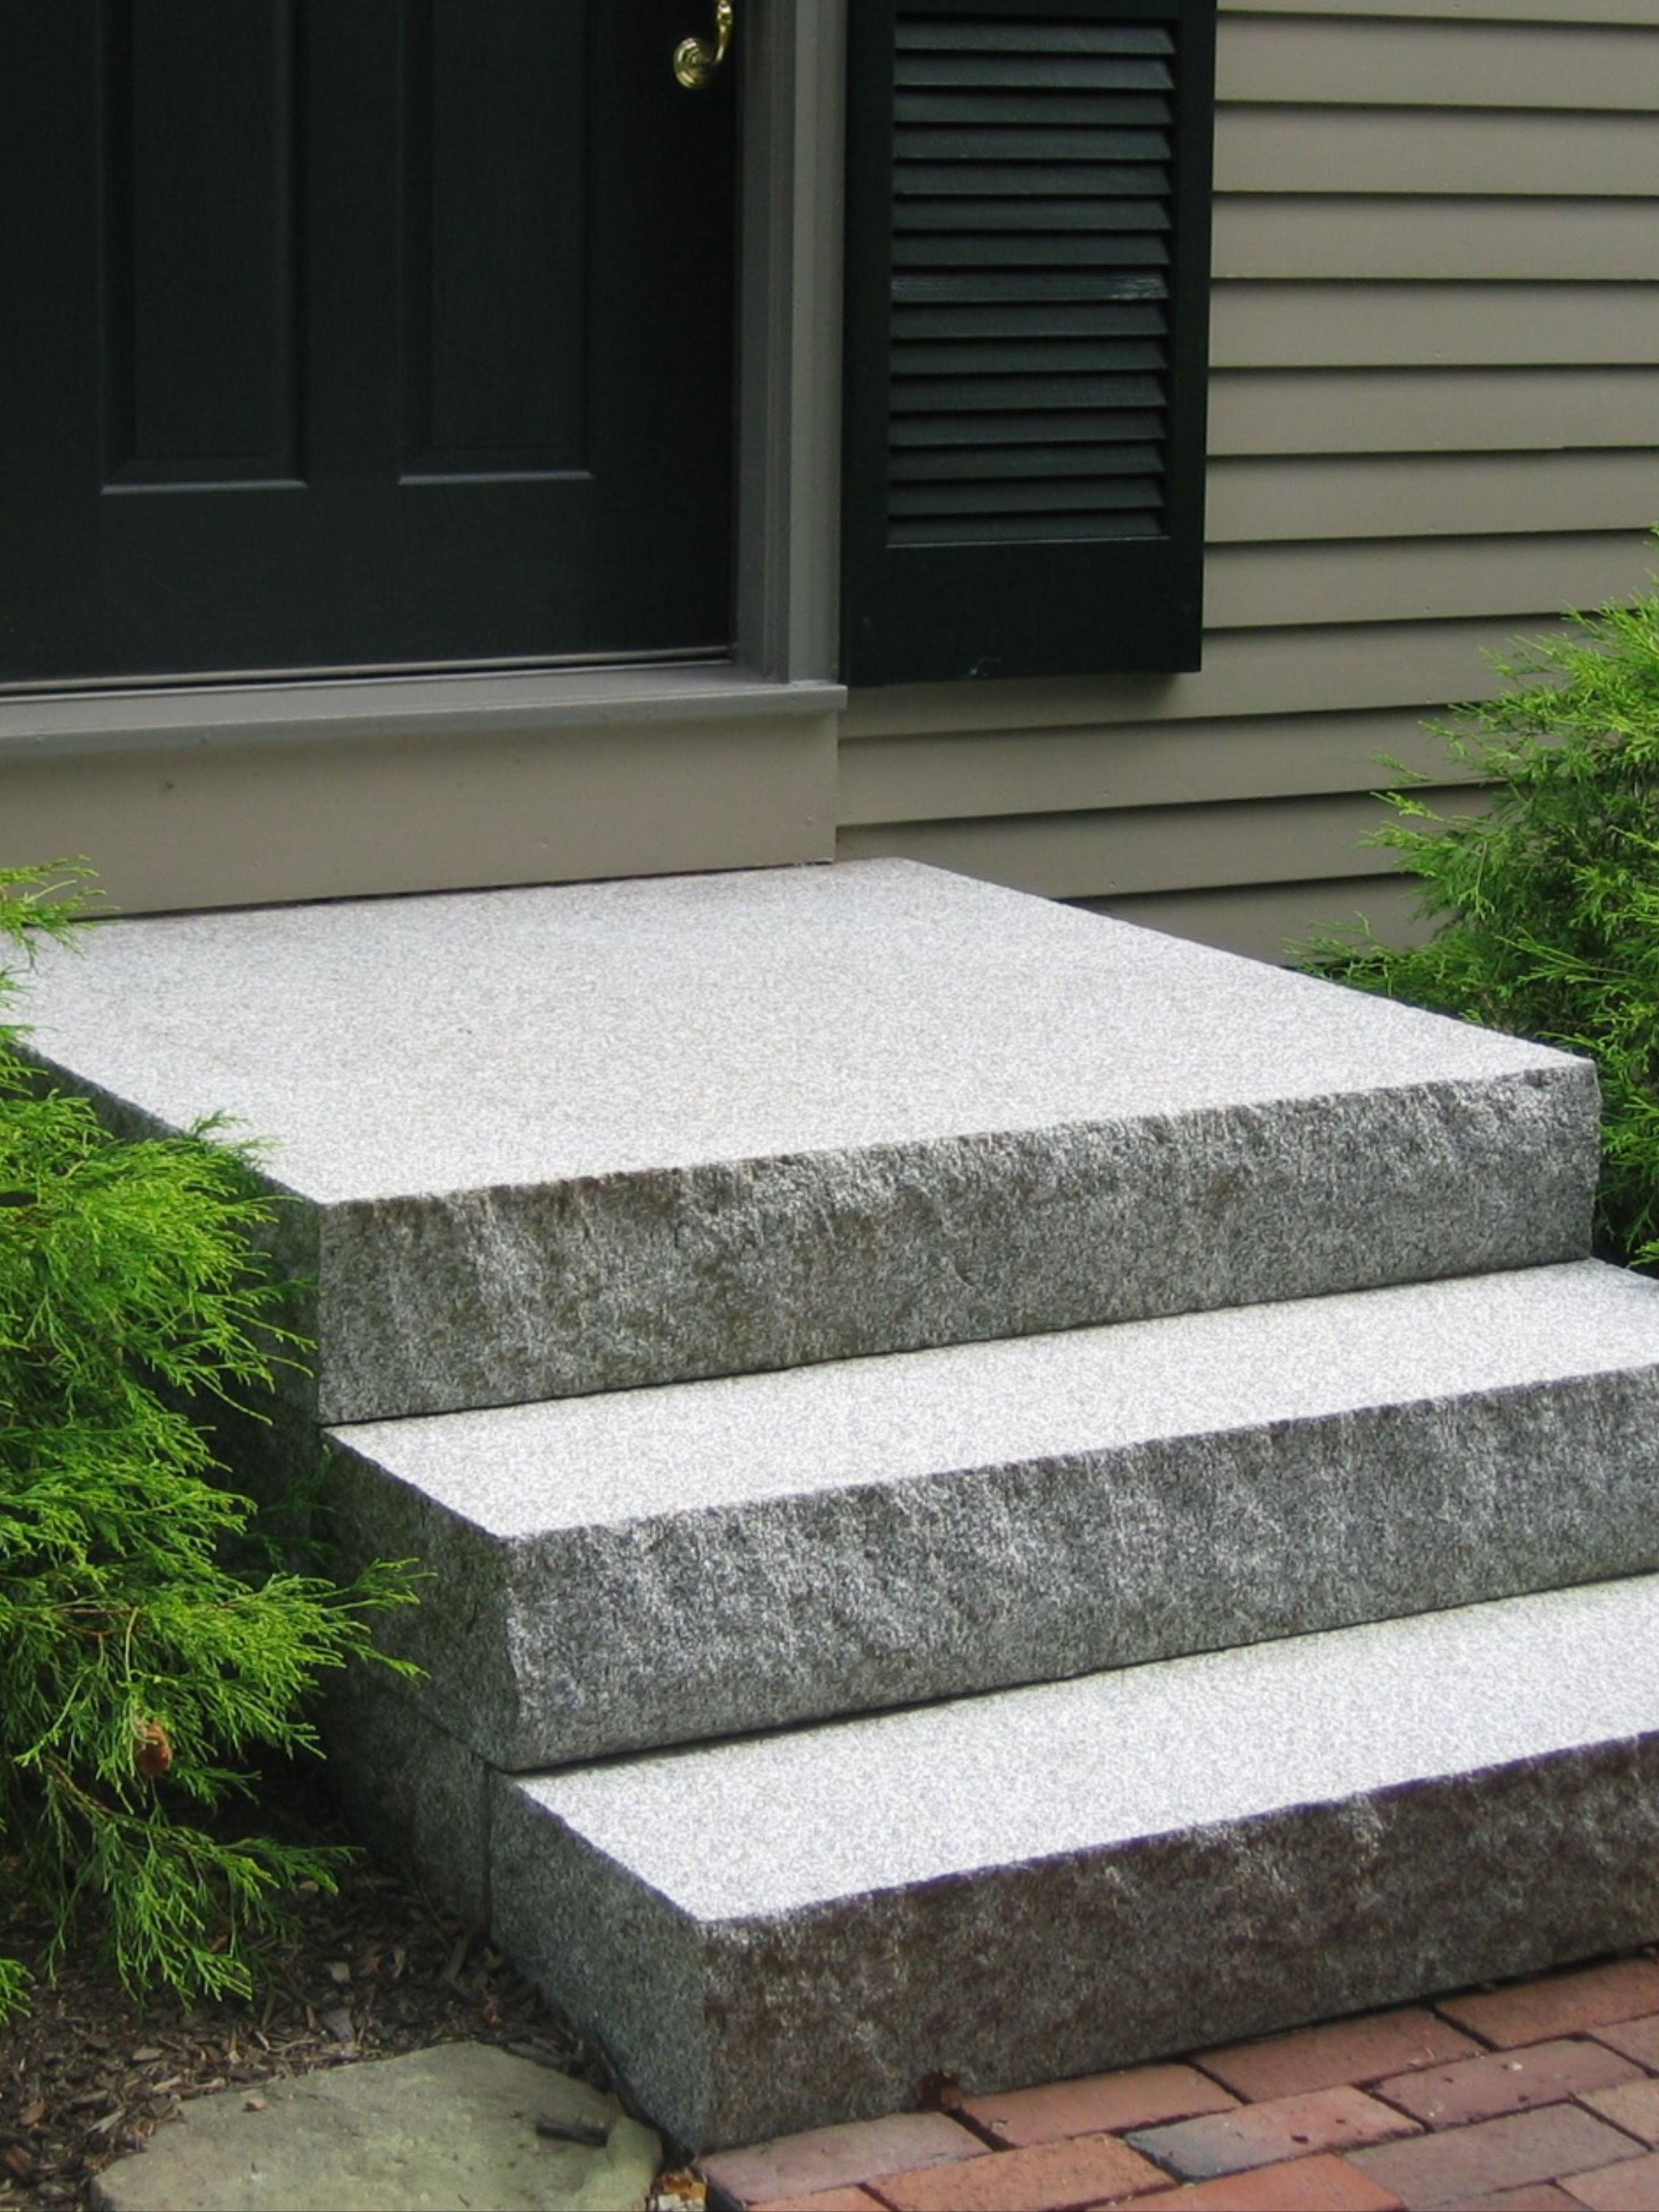 Natural Stone Steps Treads Polycor Hardscapes Masonry In 2020 Front Porch Design Front Porch Stone Steps Front Porch Stone